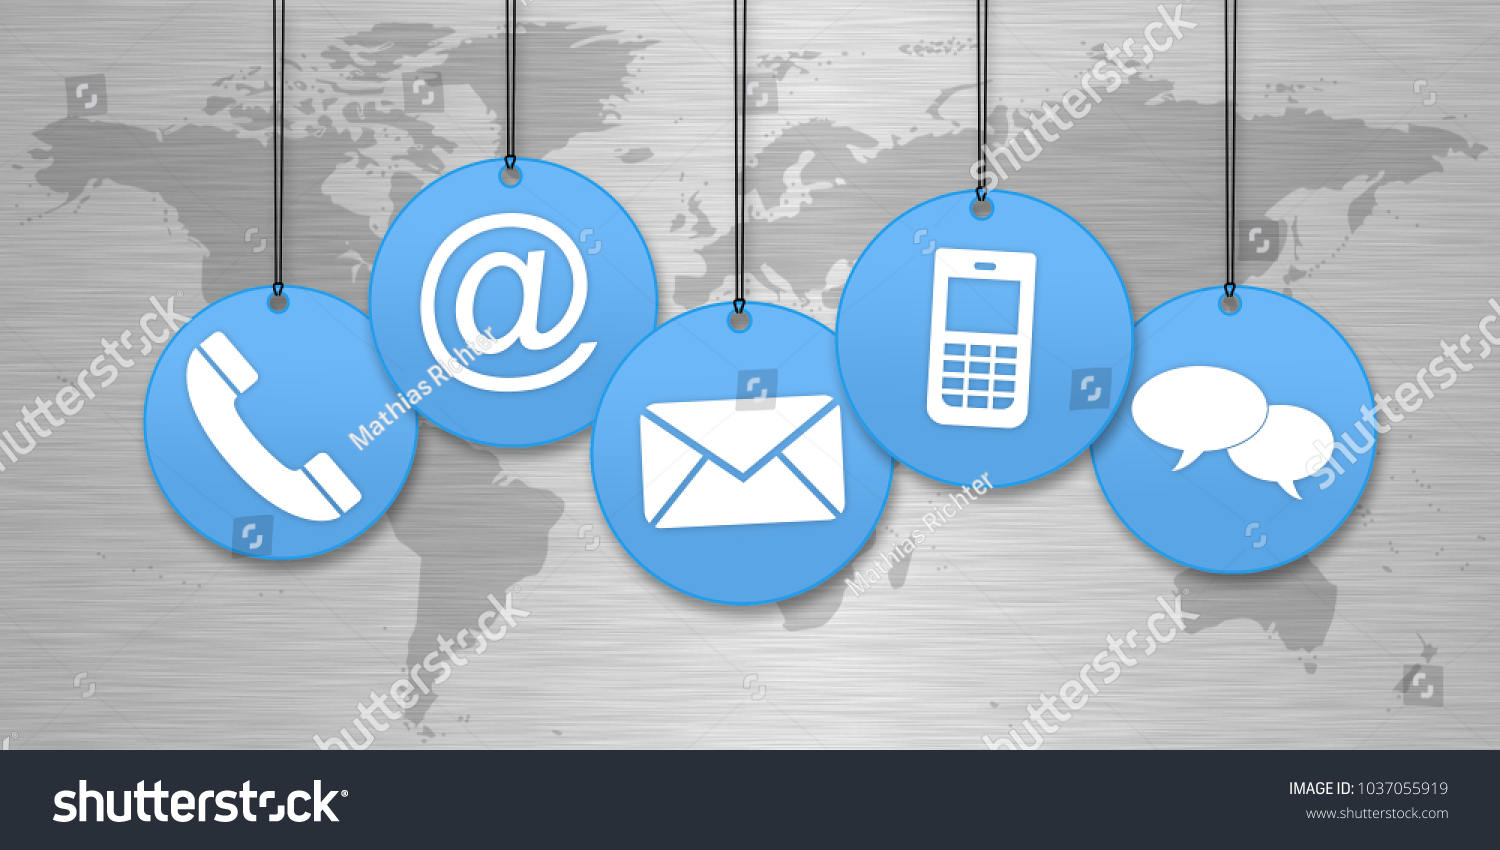 Blue Contact Us Symbols Hanging Front Stock Illustration 1037055919